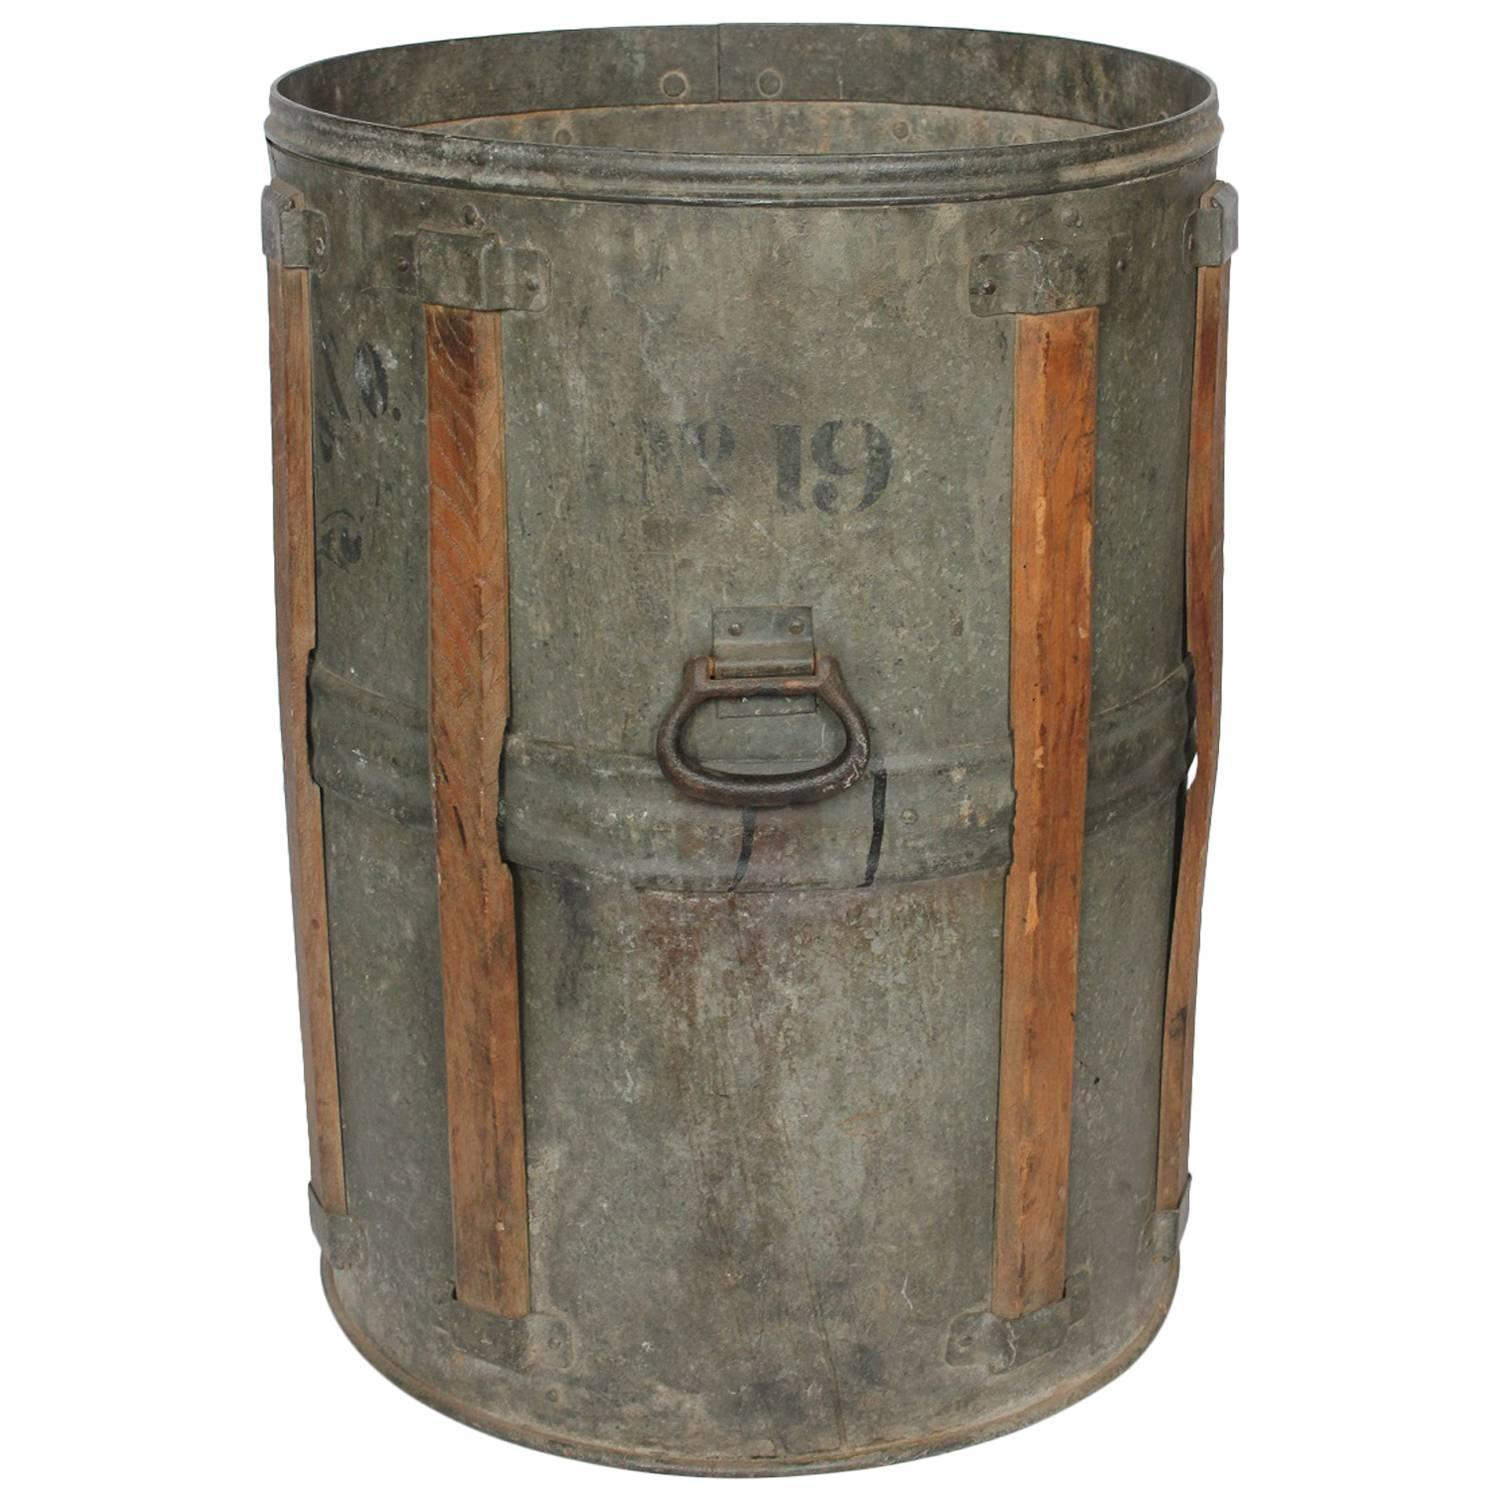 Antique rustic metal bucket at 1stdibs for Rustic galvanized buckets